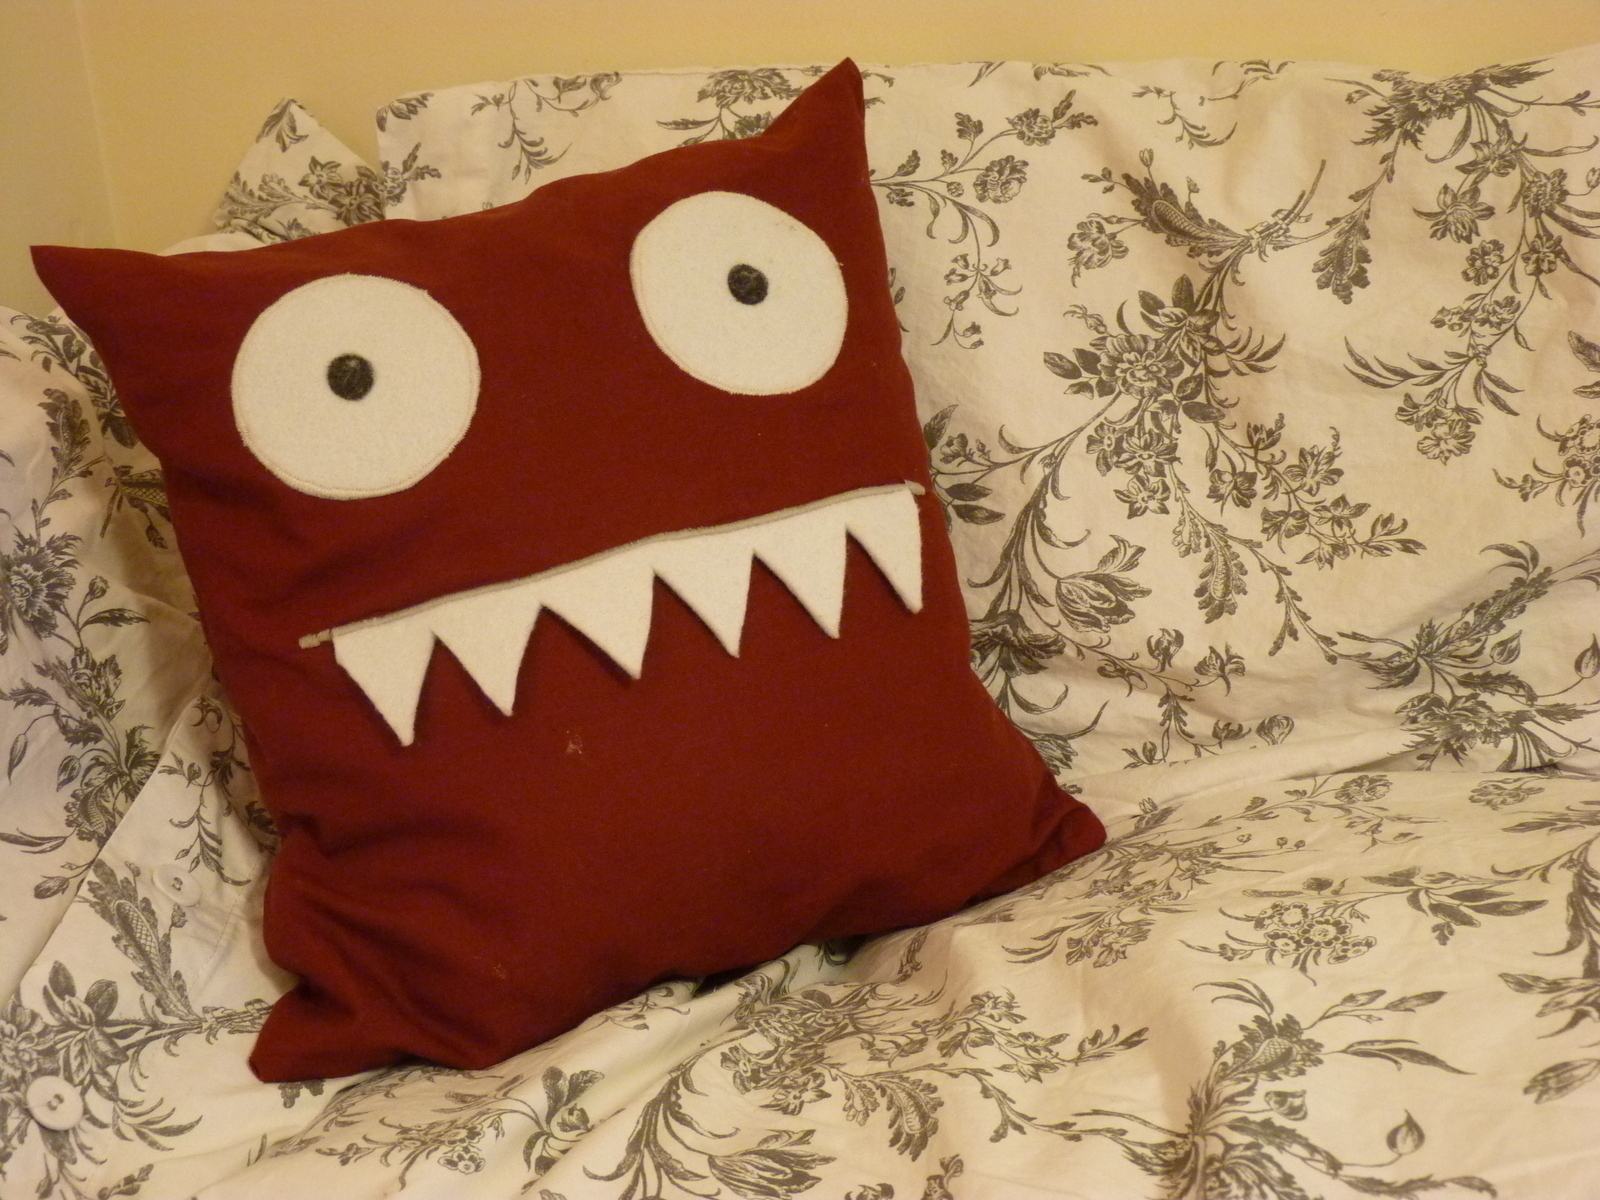 Set of pacman ghost applique cushion cover vintage game also